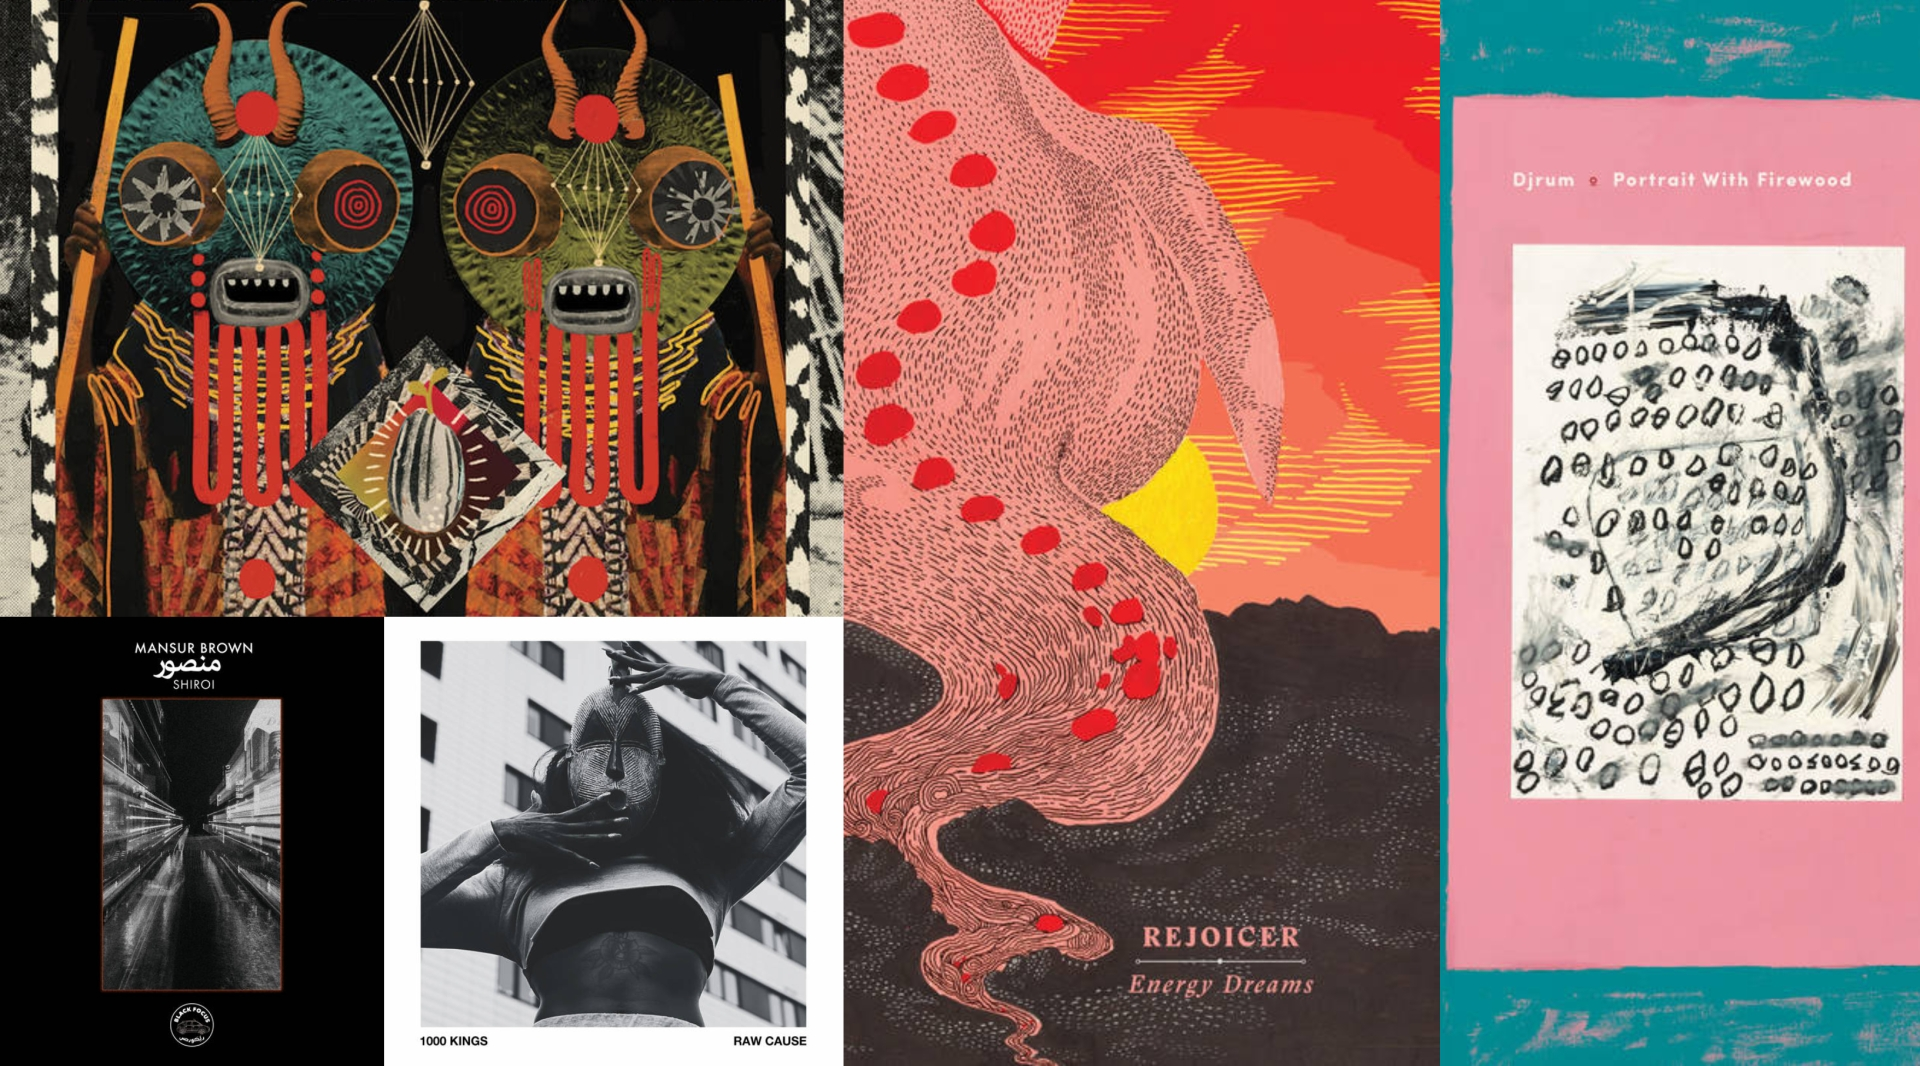 Twistedsoul: New Albums You Need To Hear